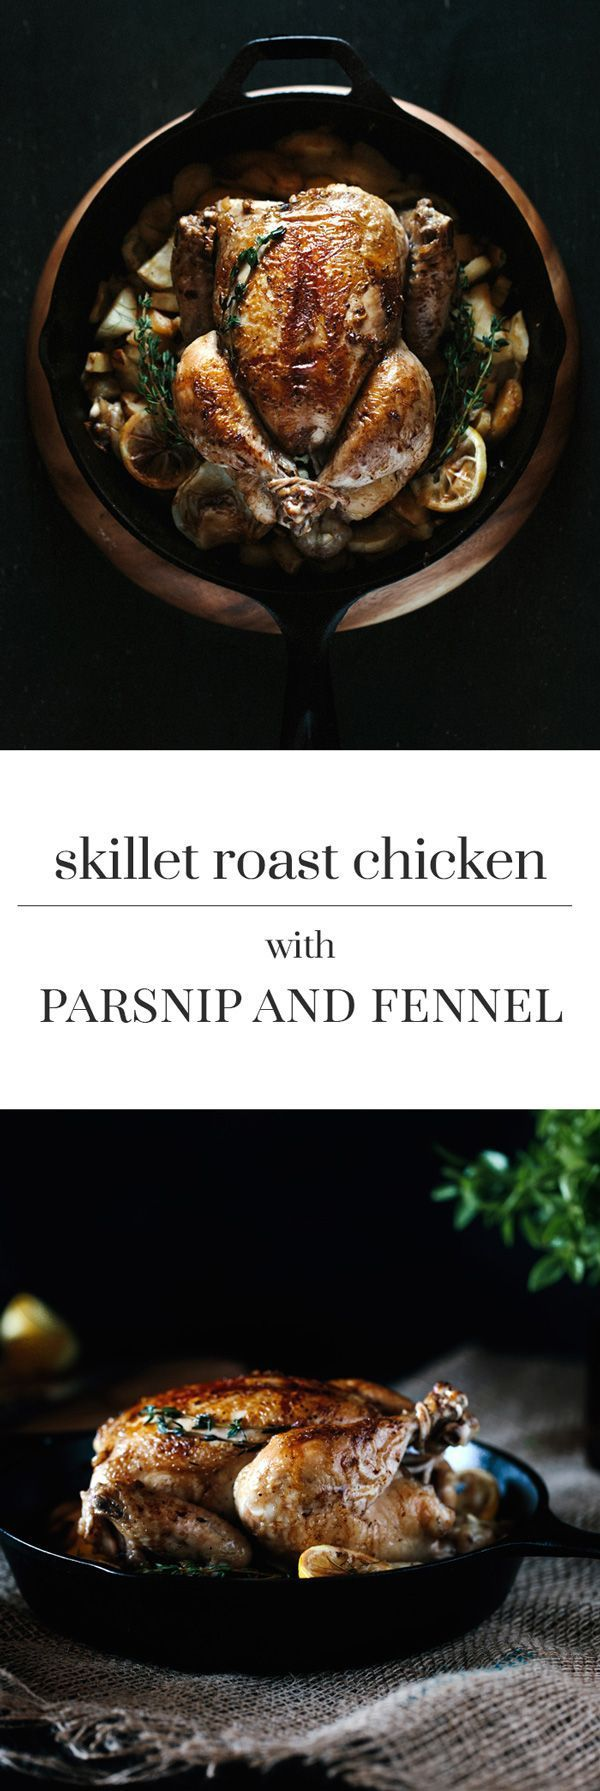 Skillet Roast Chicken with Parsnip and Fennel Recipe perfected with a technique I learned from America's Test Kitchen. Learn how to make flavorful and moist roasted chicken with this method.